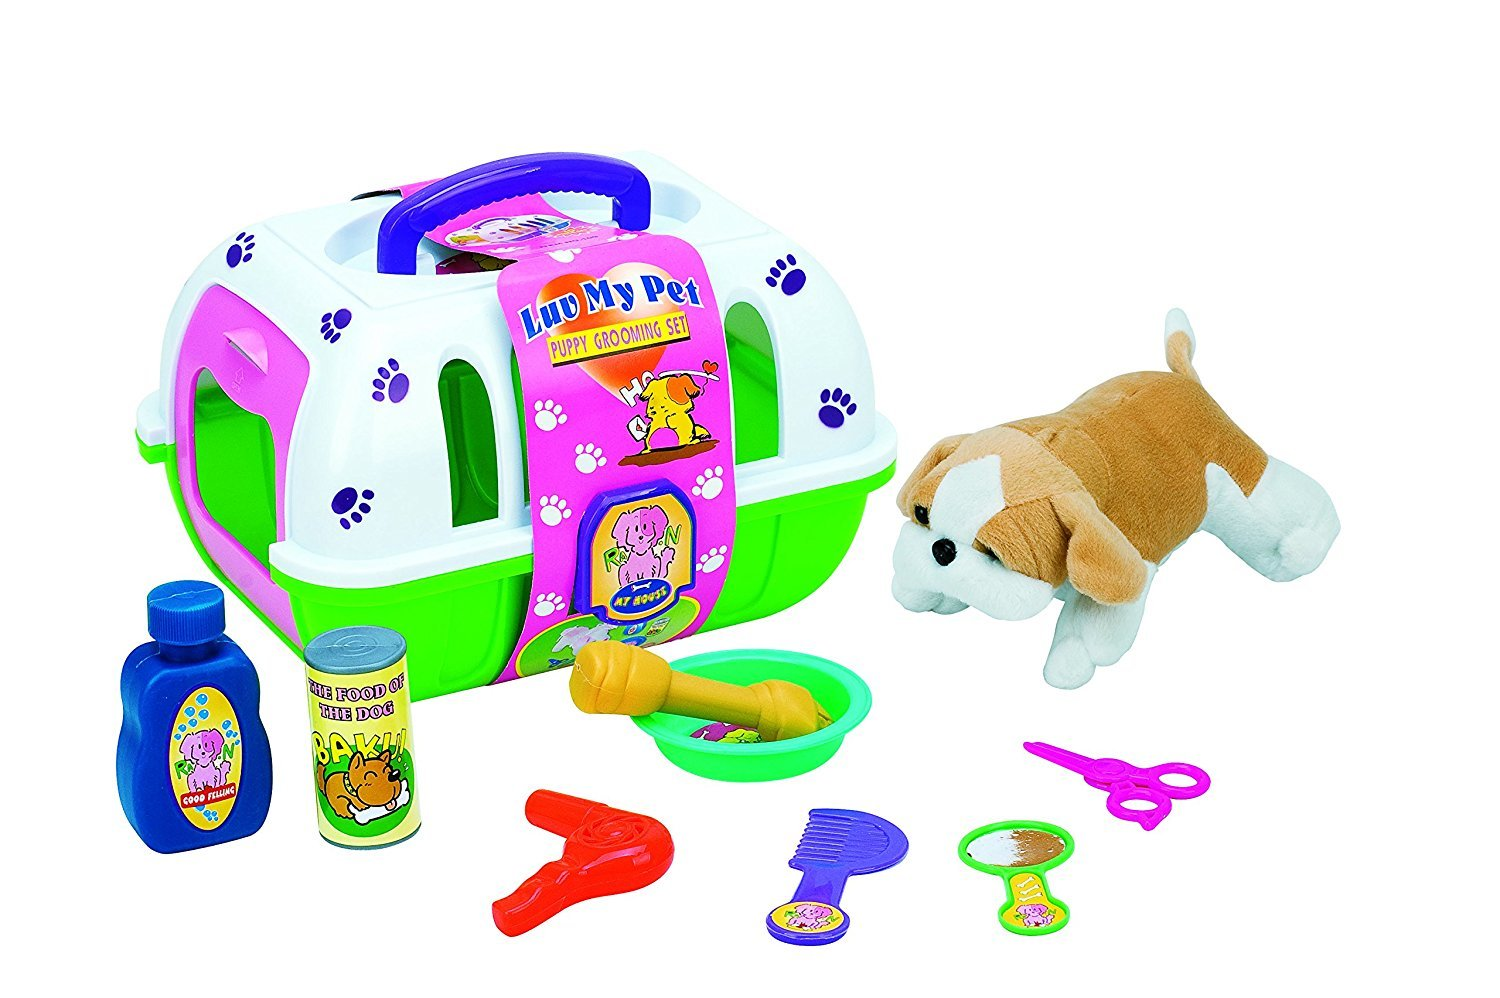 Deluxe Pet Care Puppy Dog Grooming Set Carry Case Pretend Playset Toy - with 1 Puppy with Sound & Accessories 10Pcs Set Coolbitz